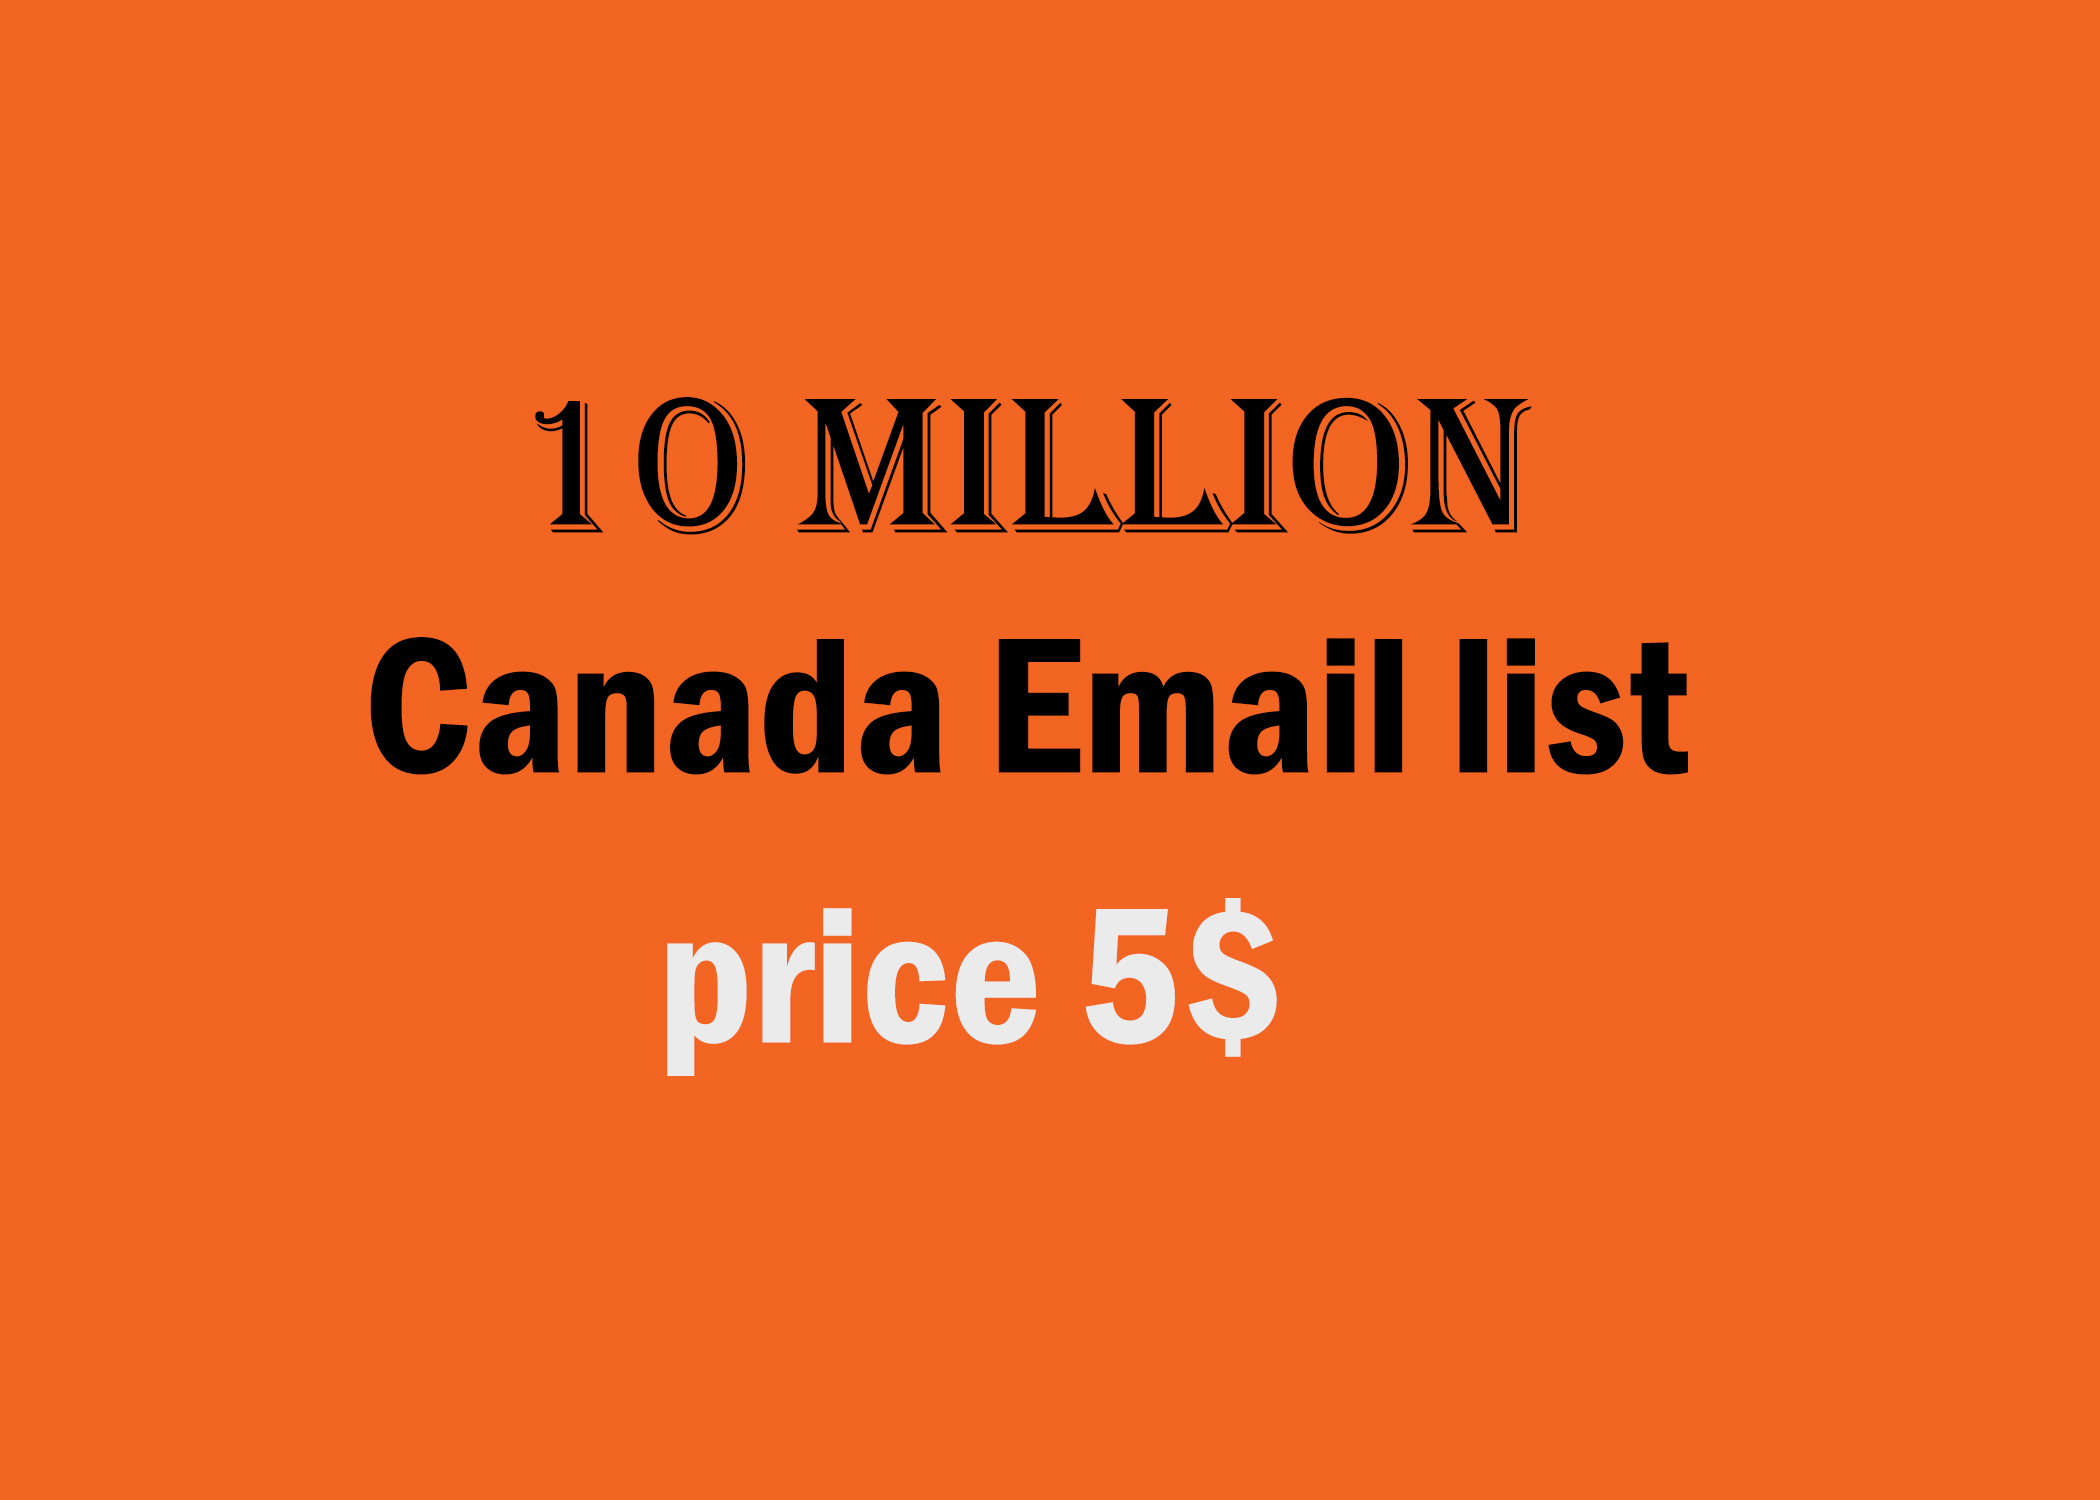 10 million canada email list in very low price